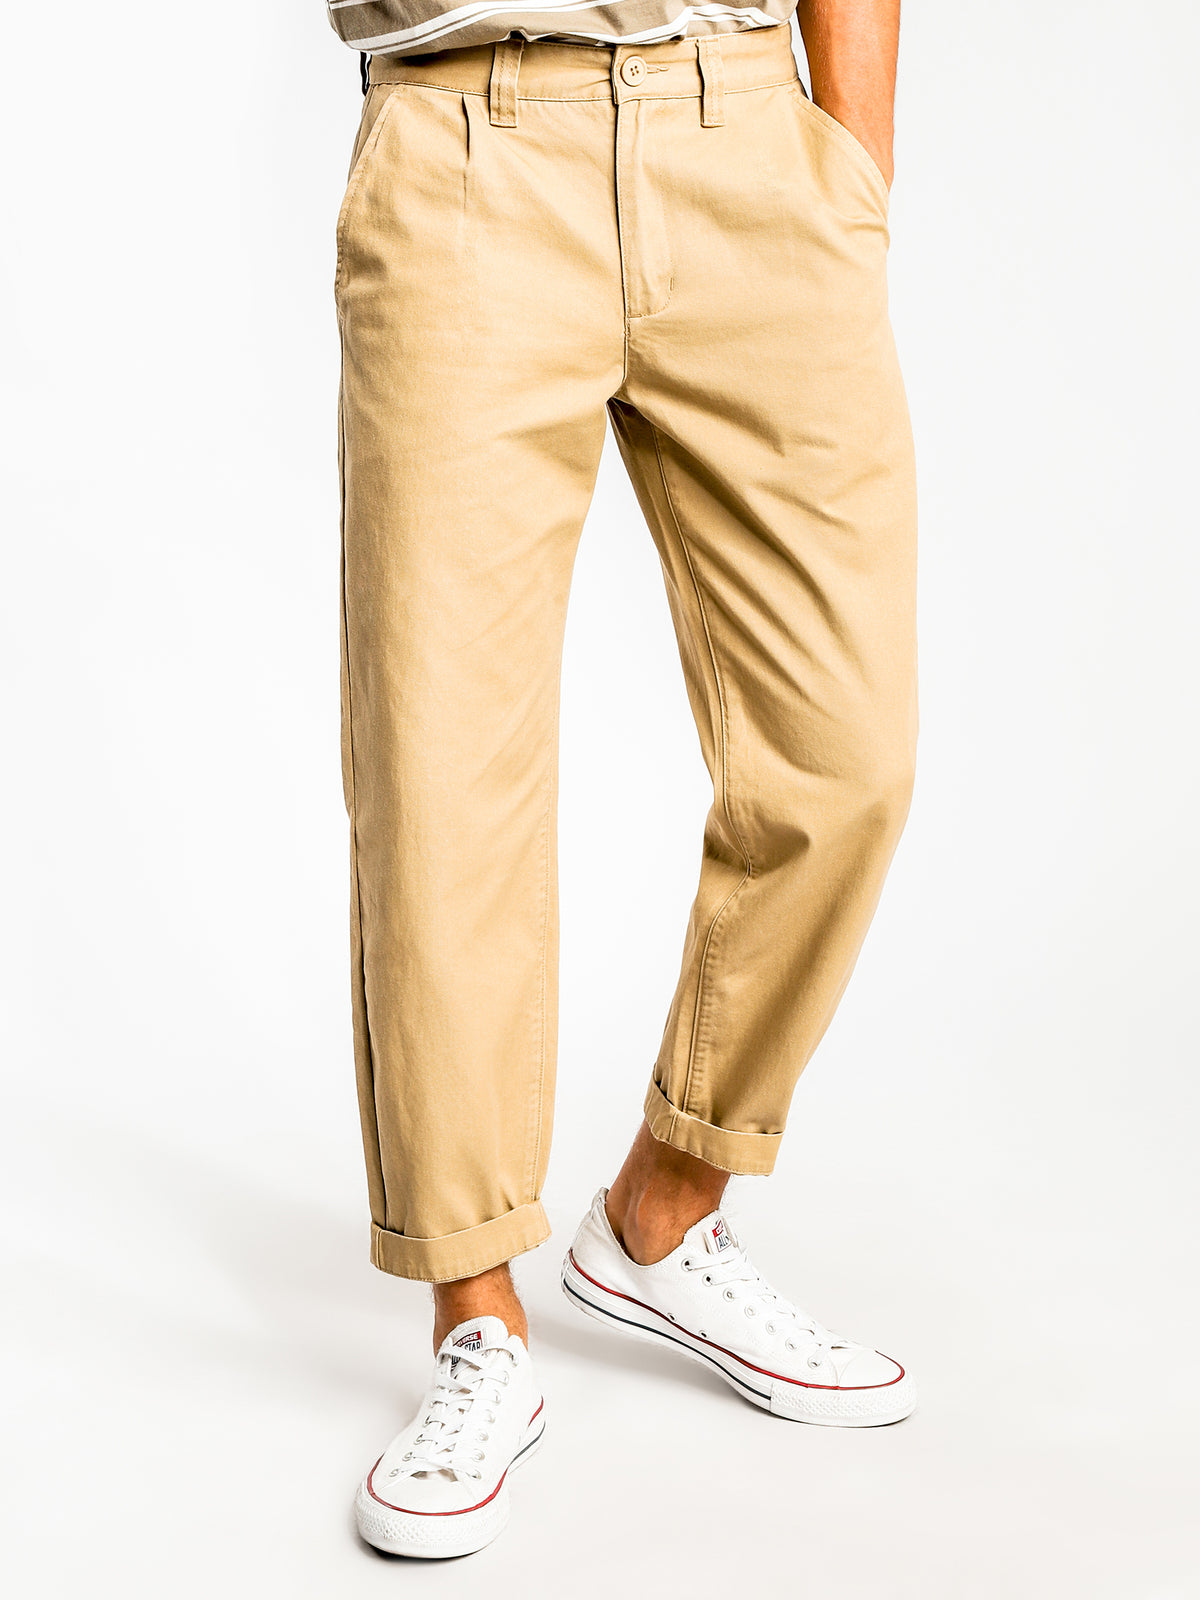 Beau Pleated Pants in Stone